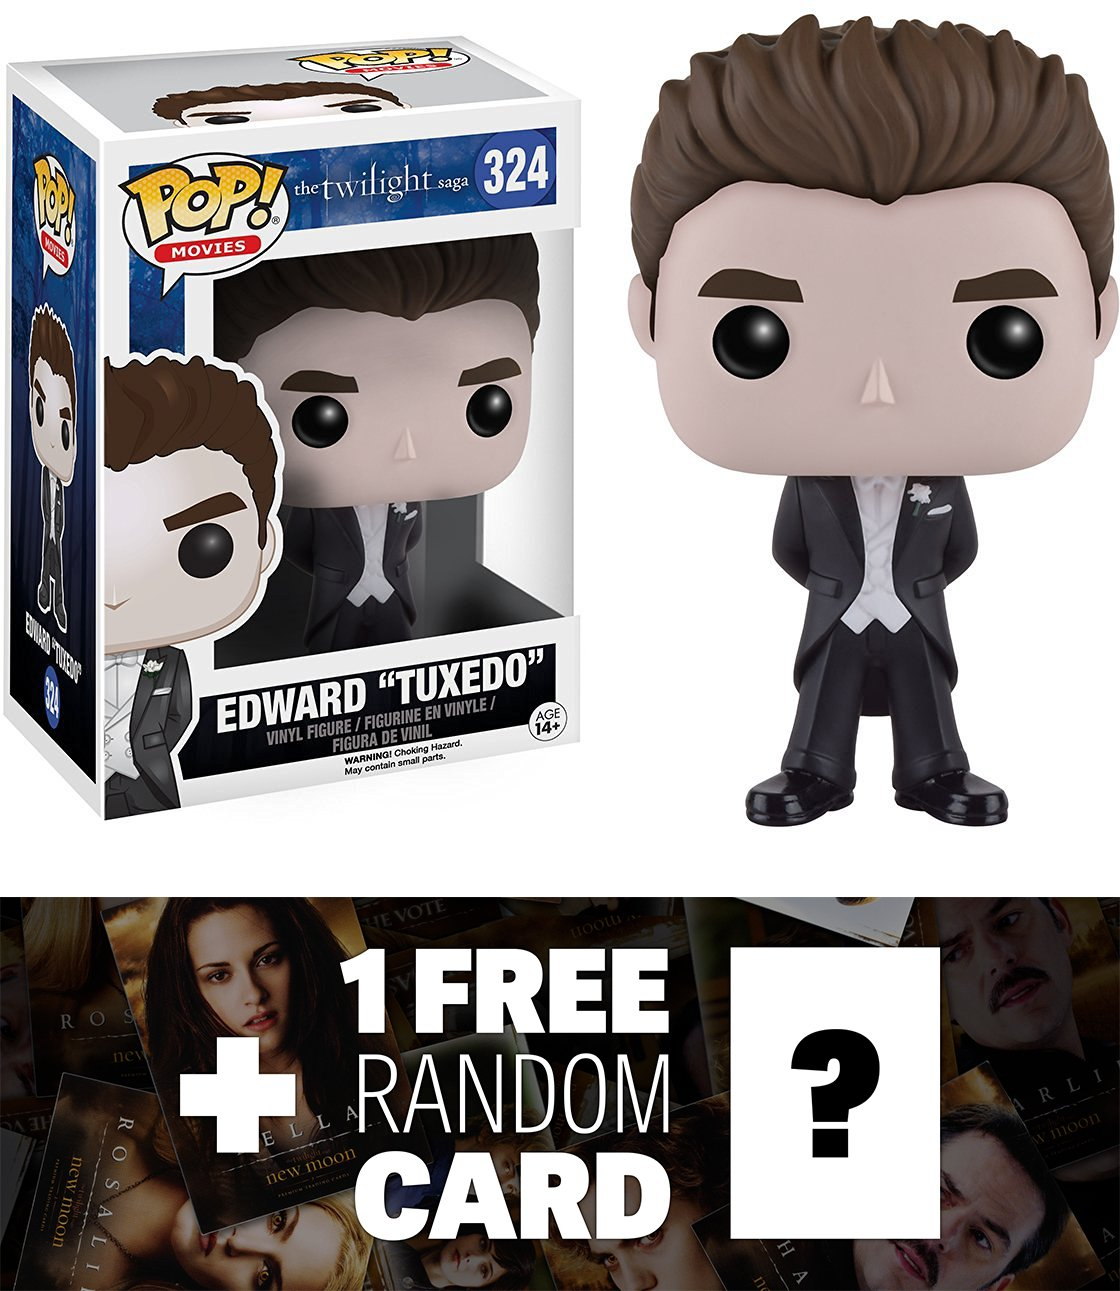 Edward Cullen (タキシード) : Funko POP 。X The Twilight Sagaビニールフィギュア+ 1 Free official Twilight Tradingカードバンドル( 097660 ) B01LPJYUQY